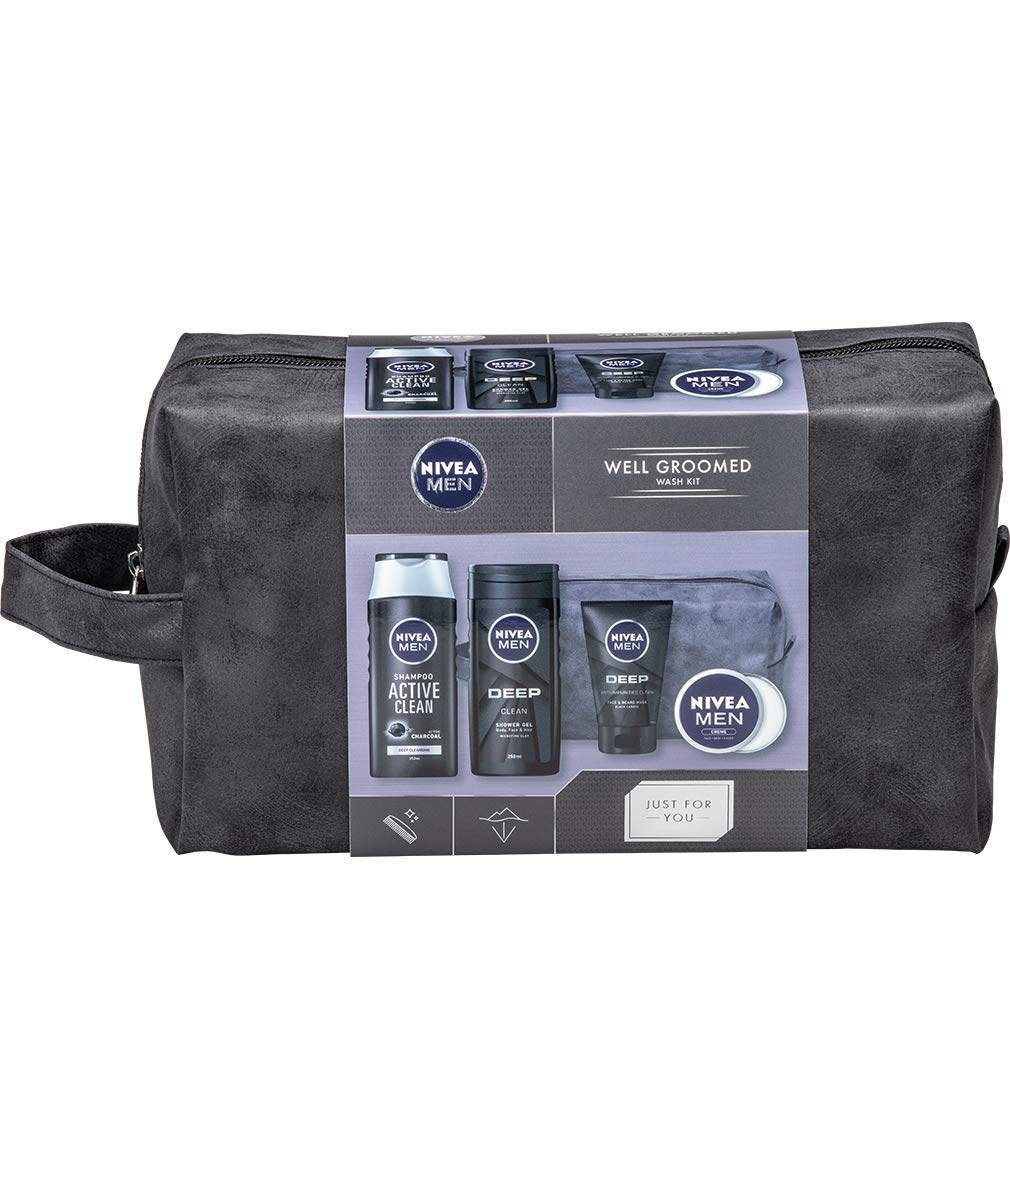 NIVEA MEN Well Groomed Gift Set for Him (5 Products)